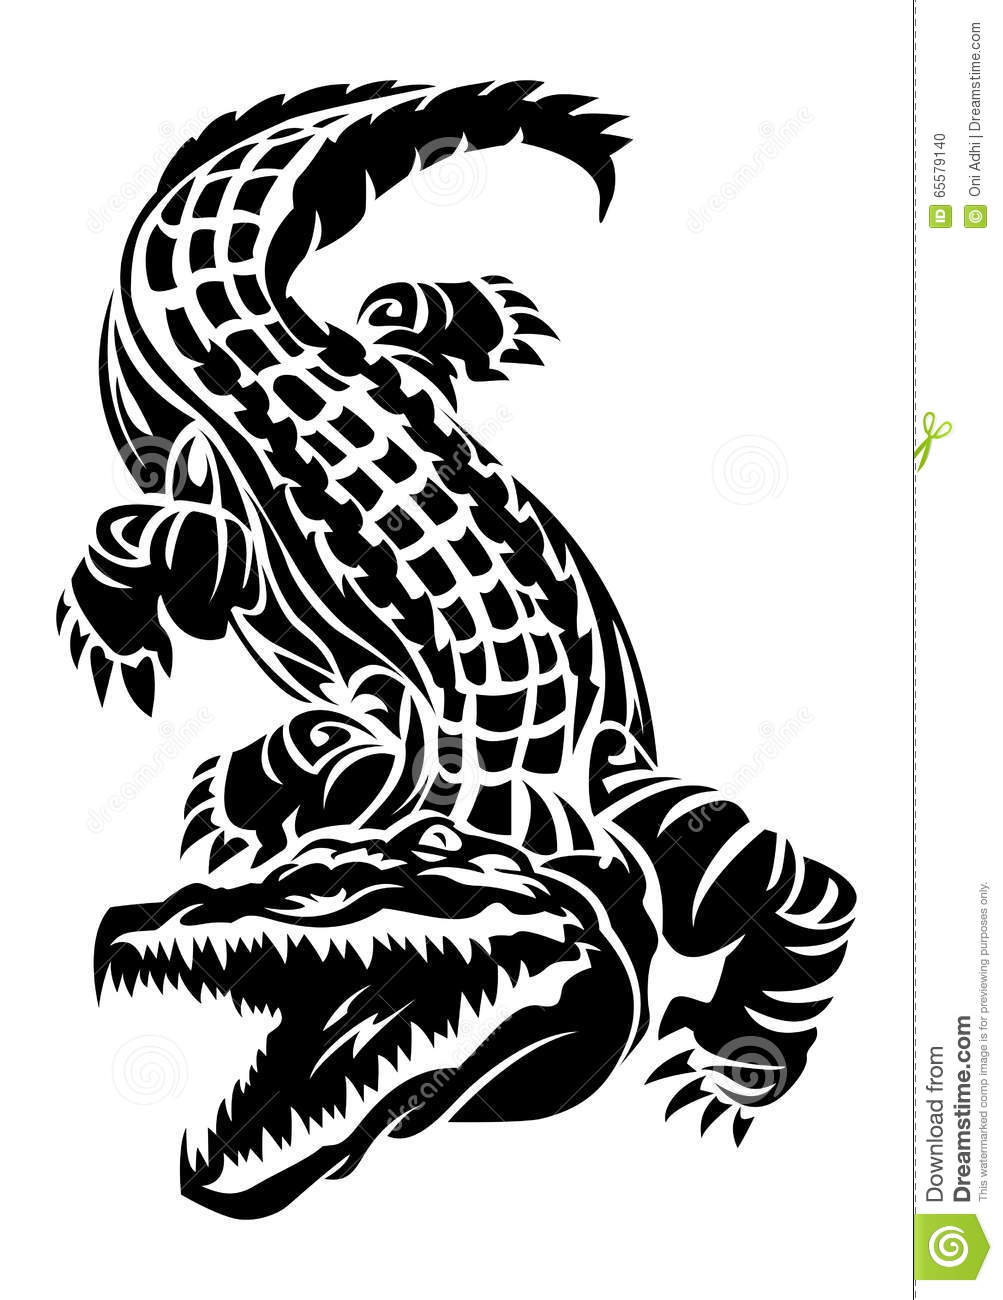 Tatouage De Crocodile Sur Le Fond Blanc D Isolement